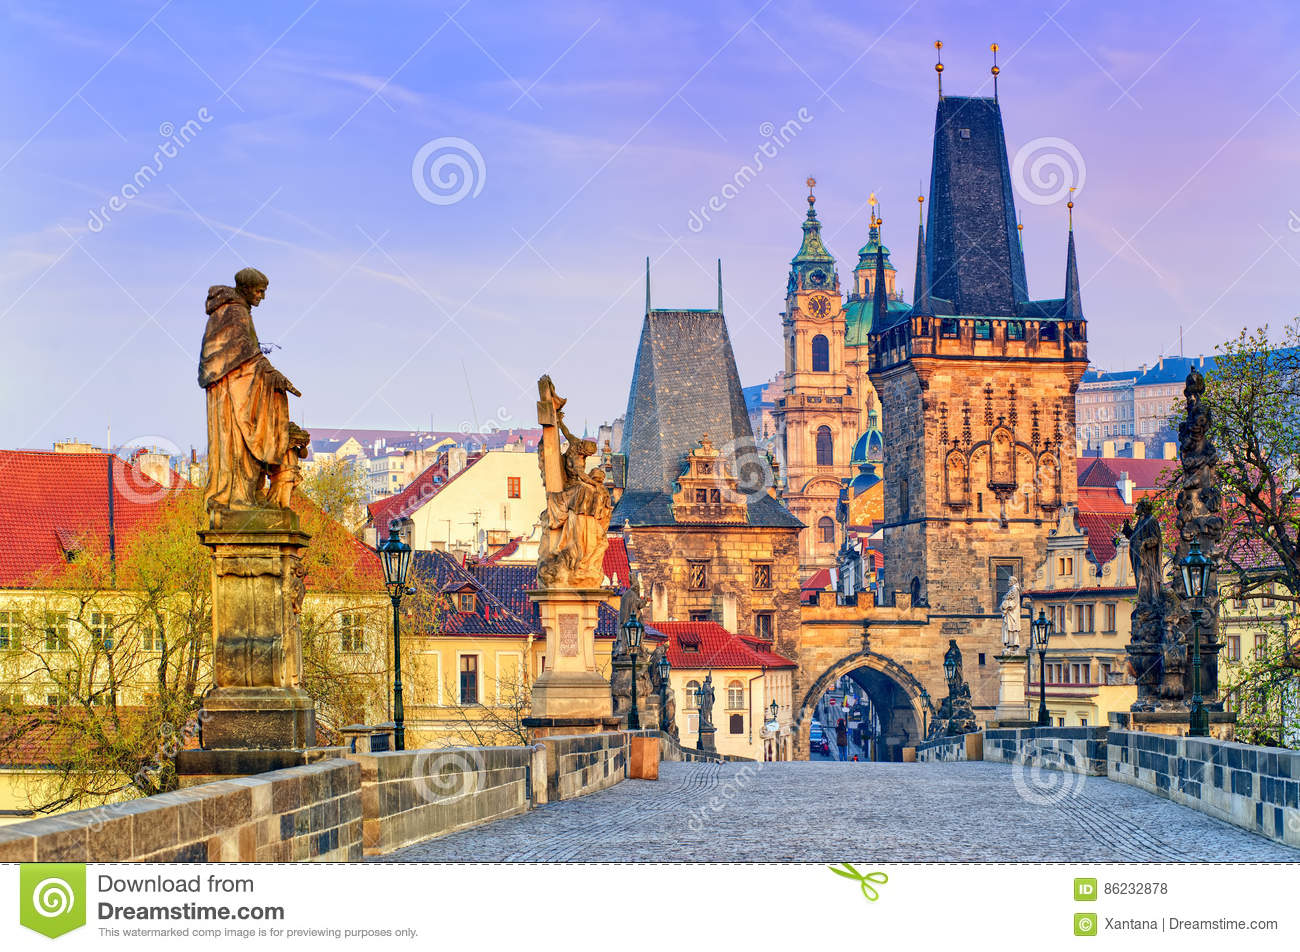 Charles Bridge in Prague old town, Czech Republic